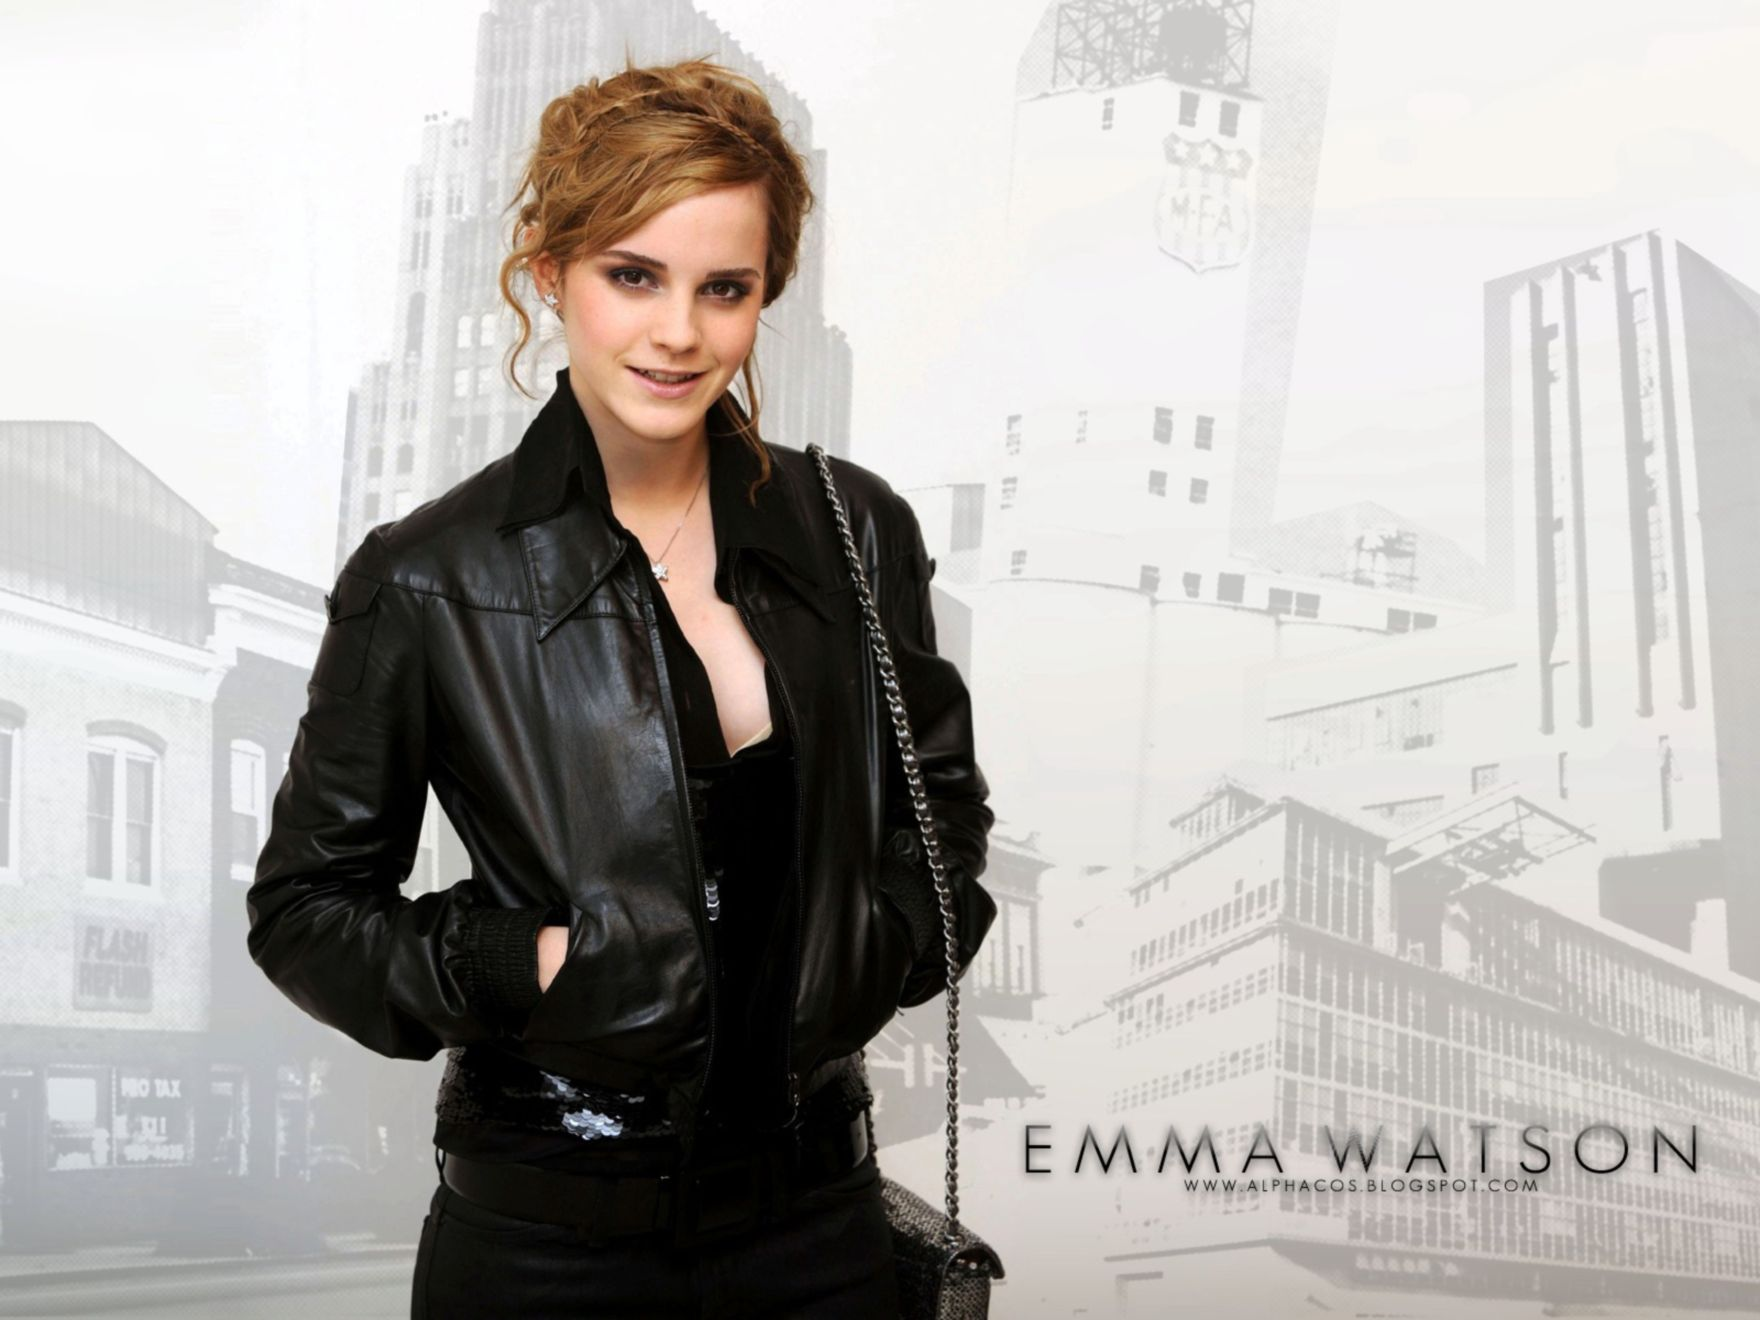 Download free HD Emma Watson Black Normal Wallpaper, image